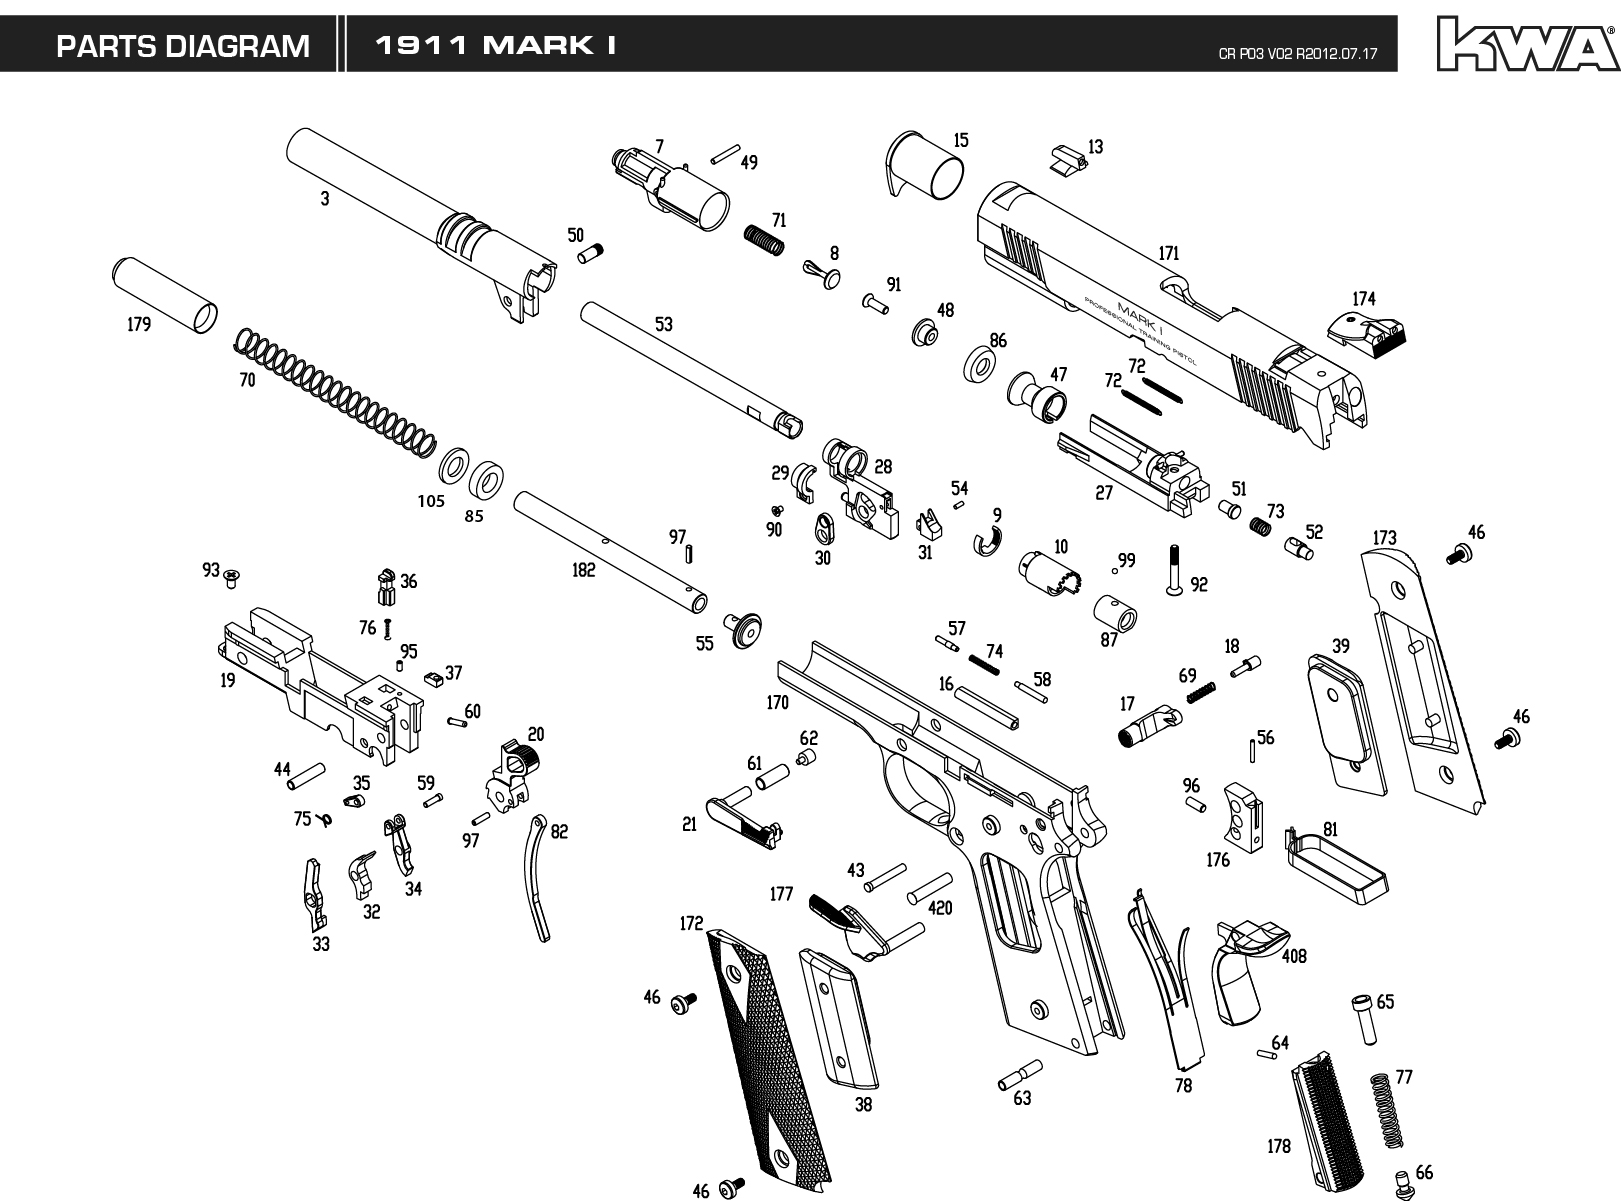 Kwa Gun Manual Mark I